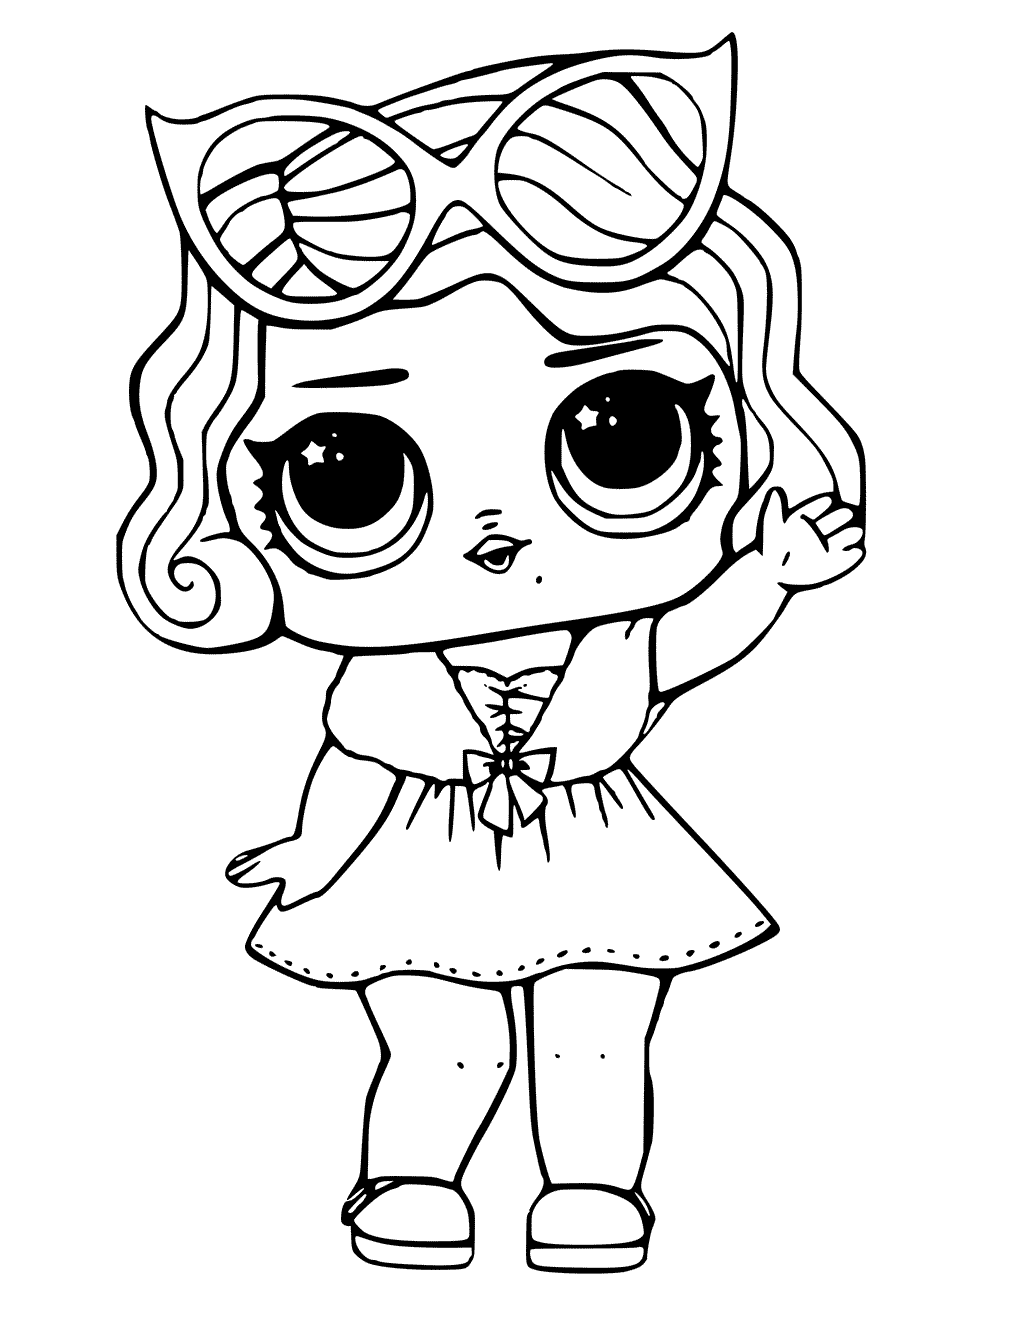 Lol Dolls Coloring Pages Best Coloring Pages For Kids Baby Coloring Pages Unicorn Coloring Pages Cute Coloring Pages